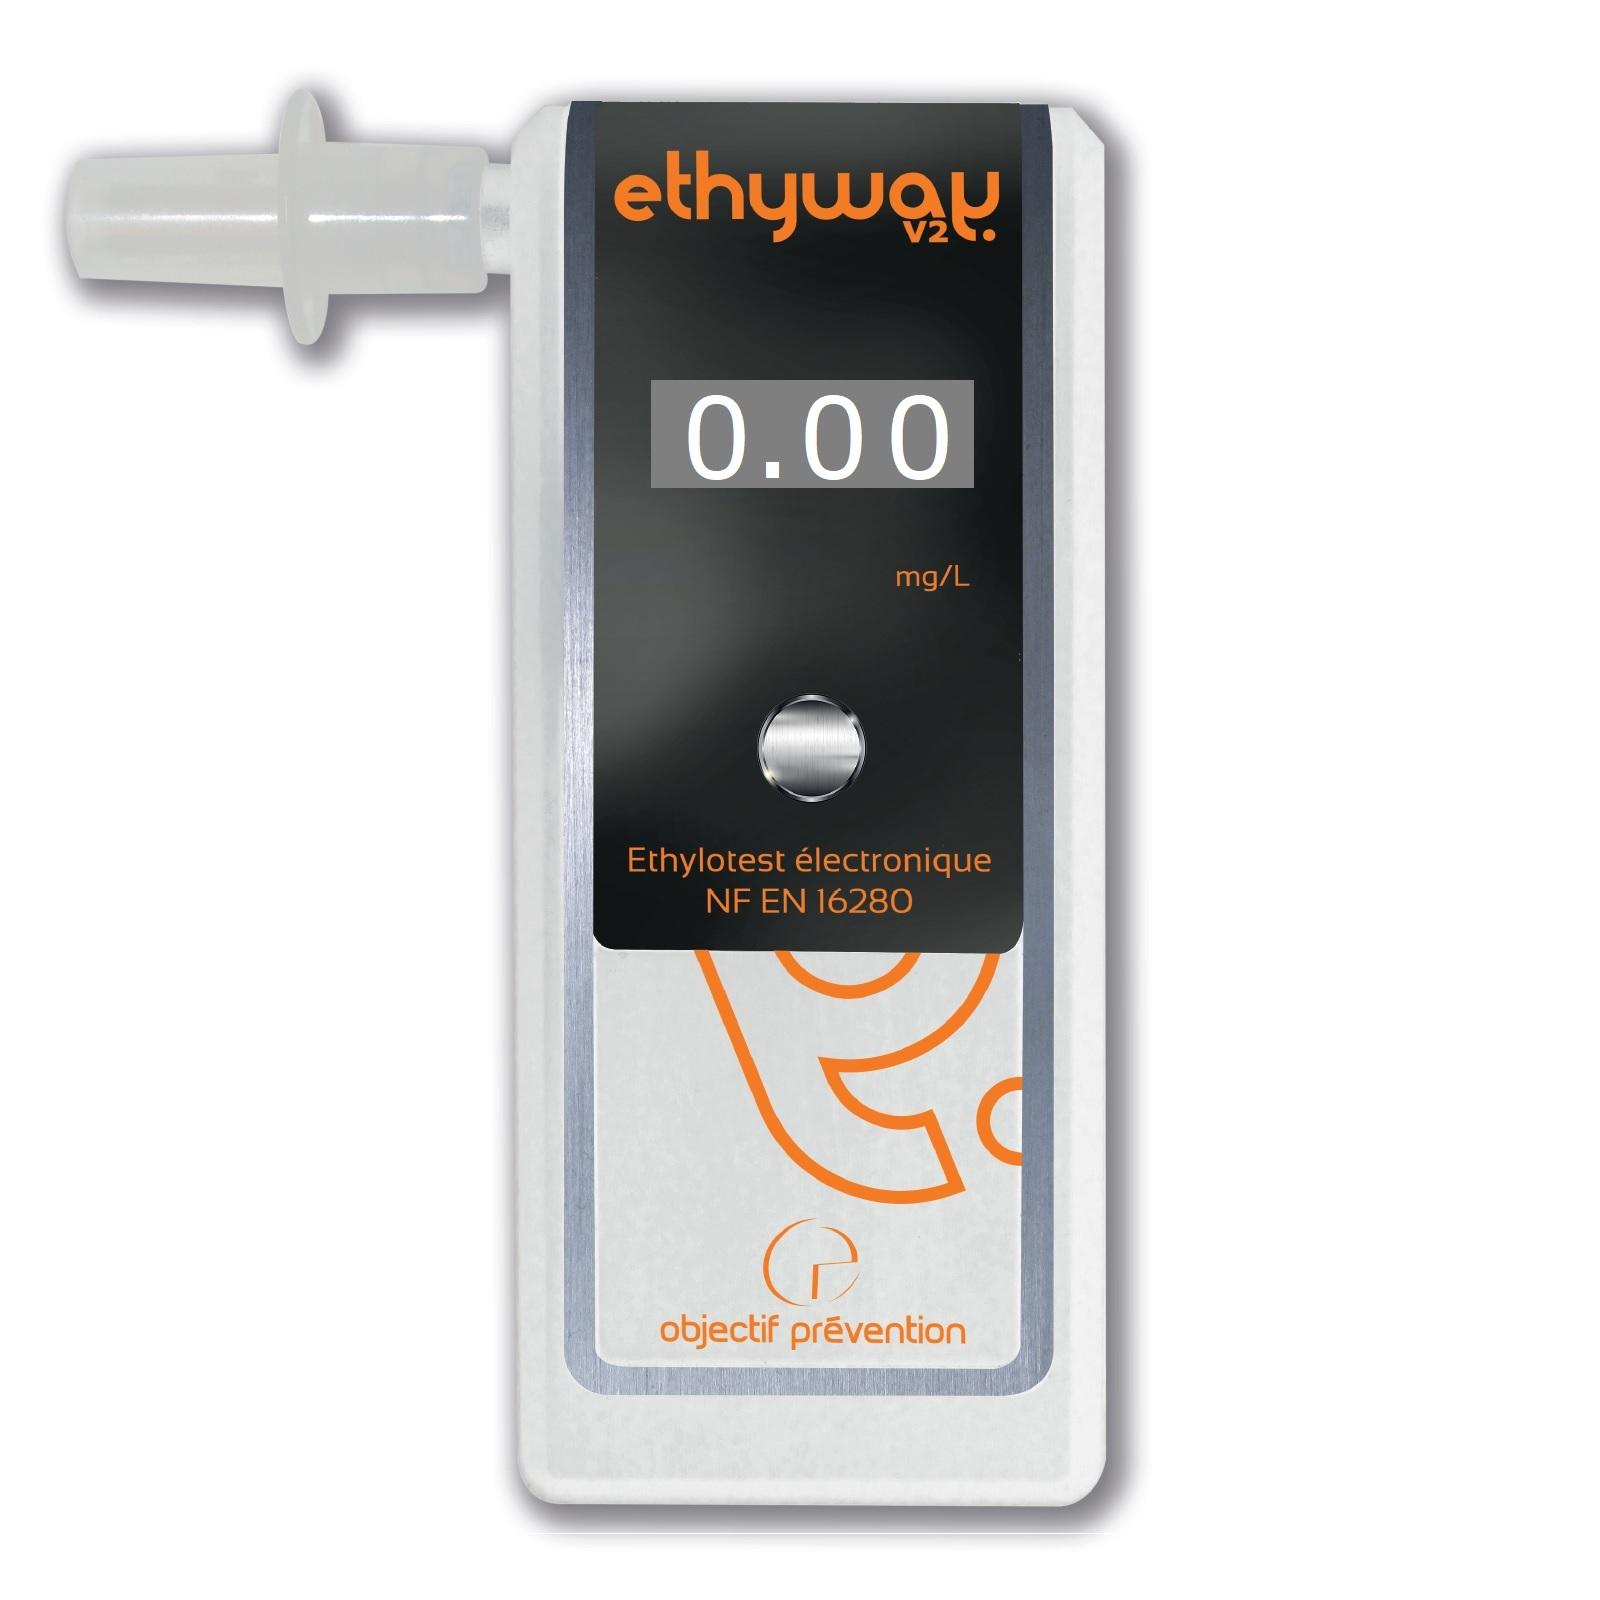 NF French certified Breathalyzer